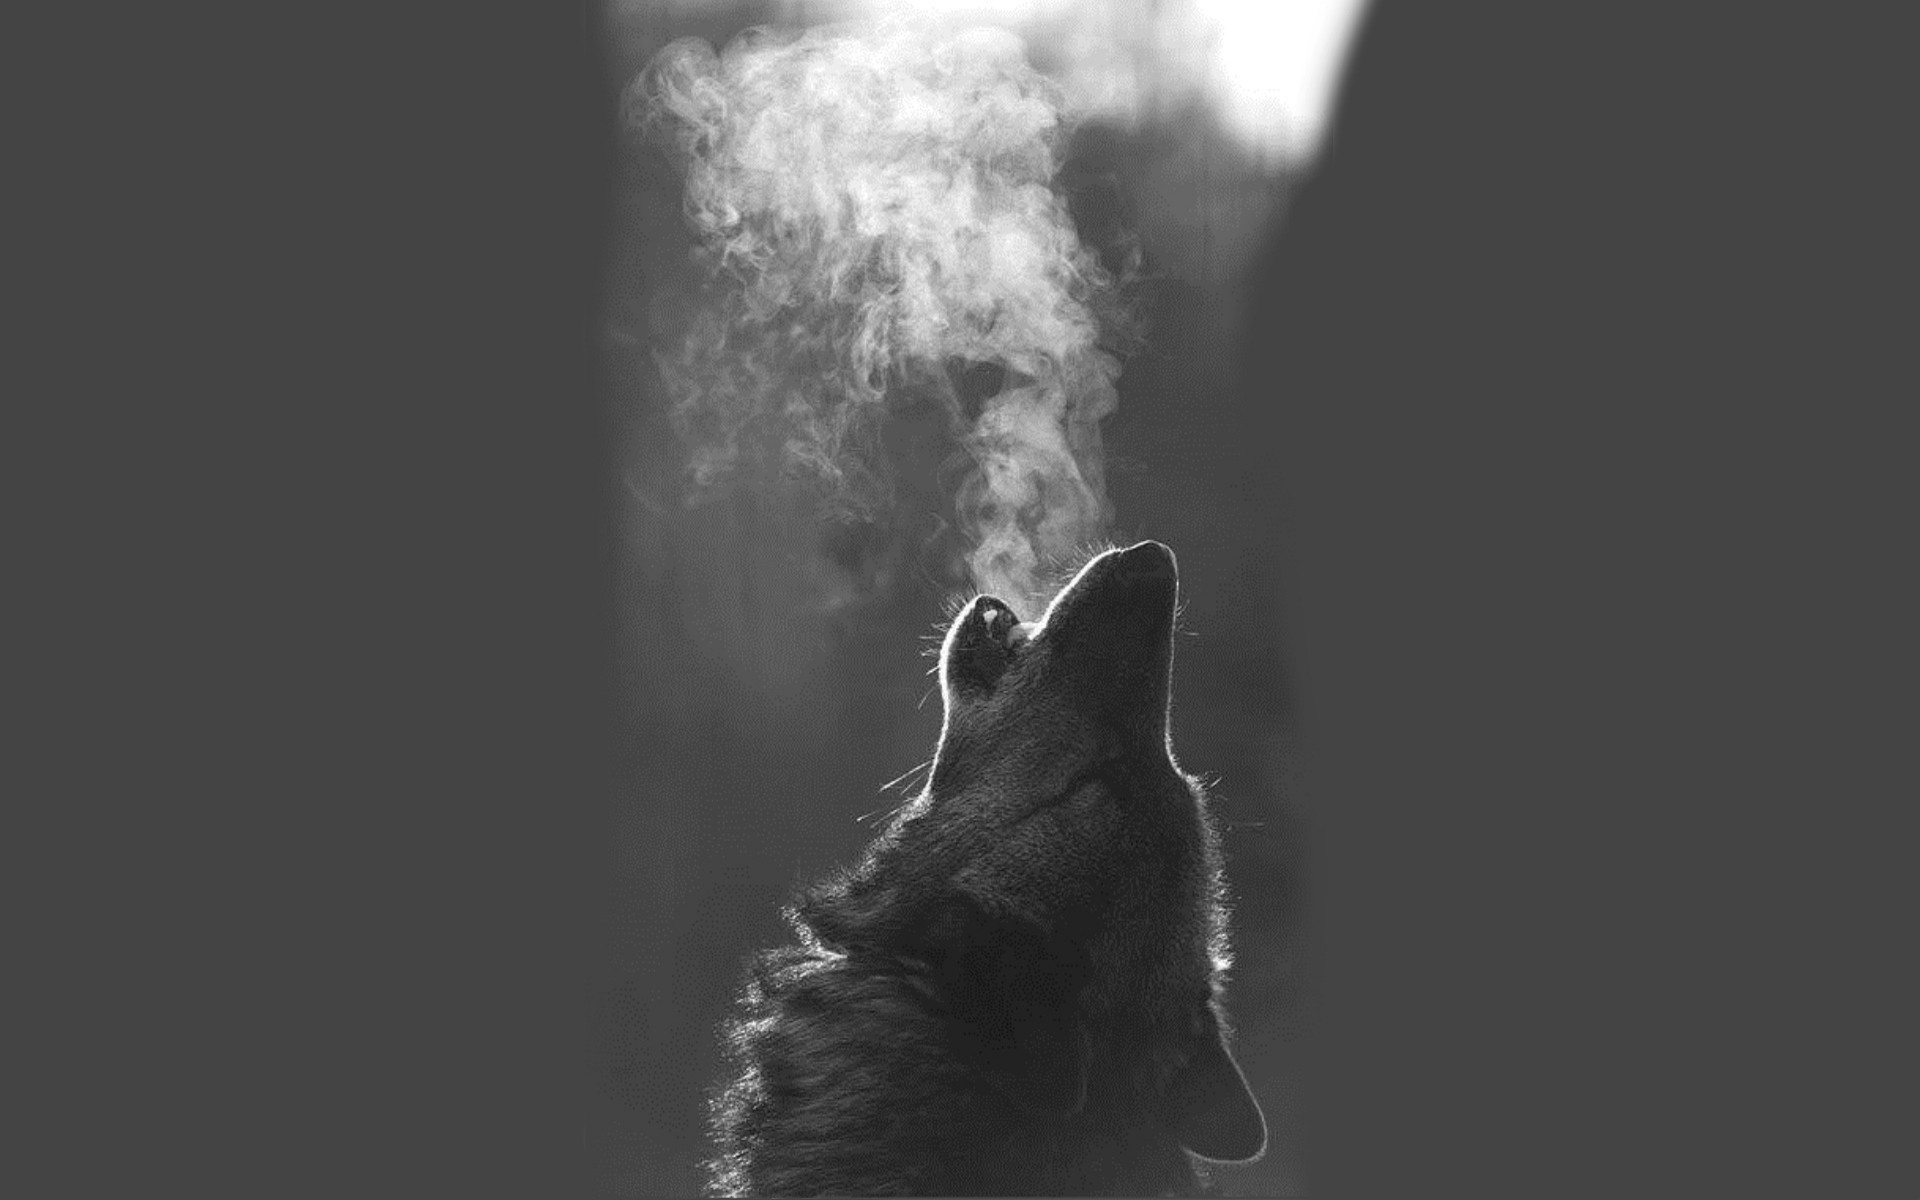 Wolves howling wallpaper 68 images - Wolf howling hd ...